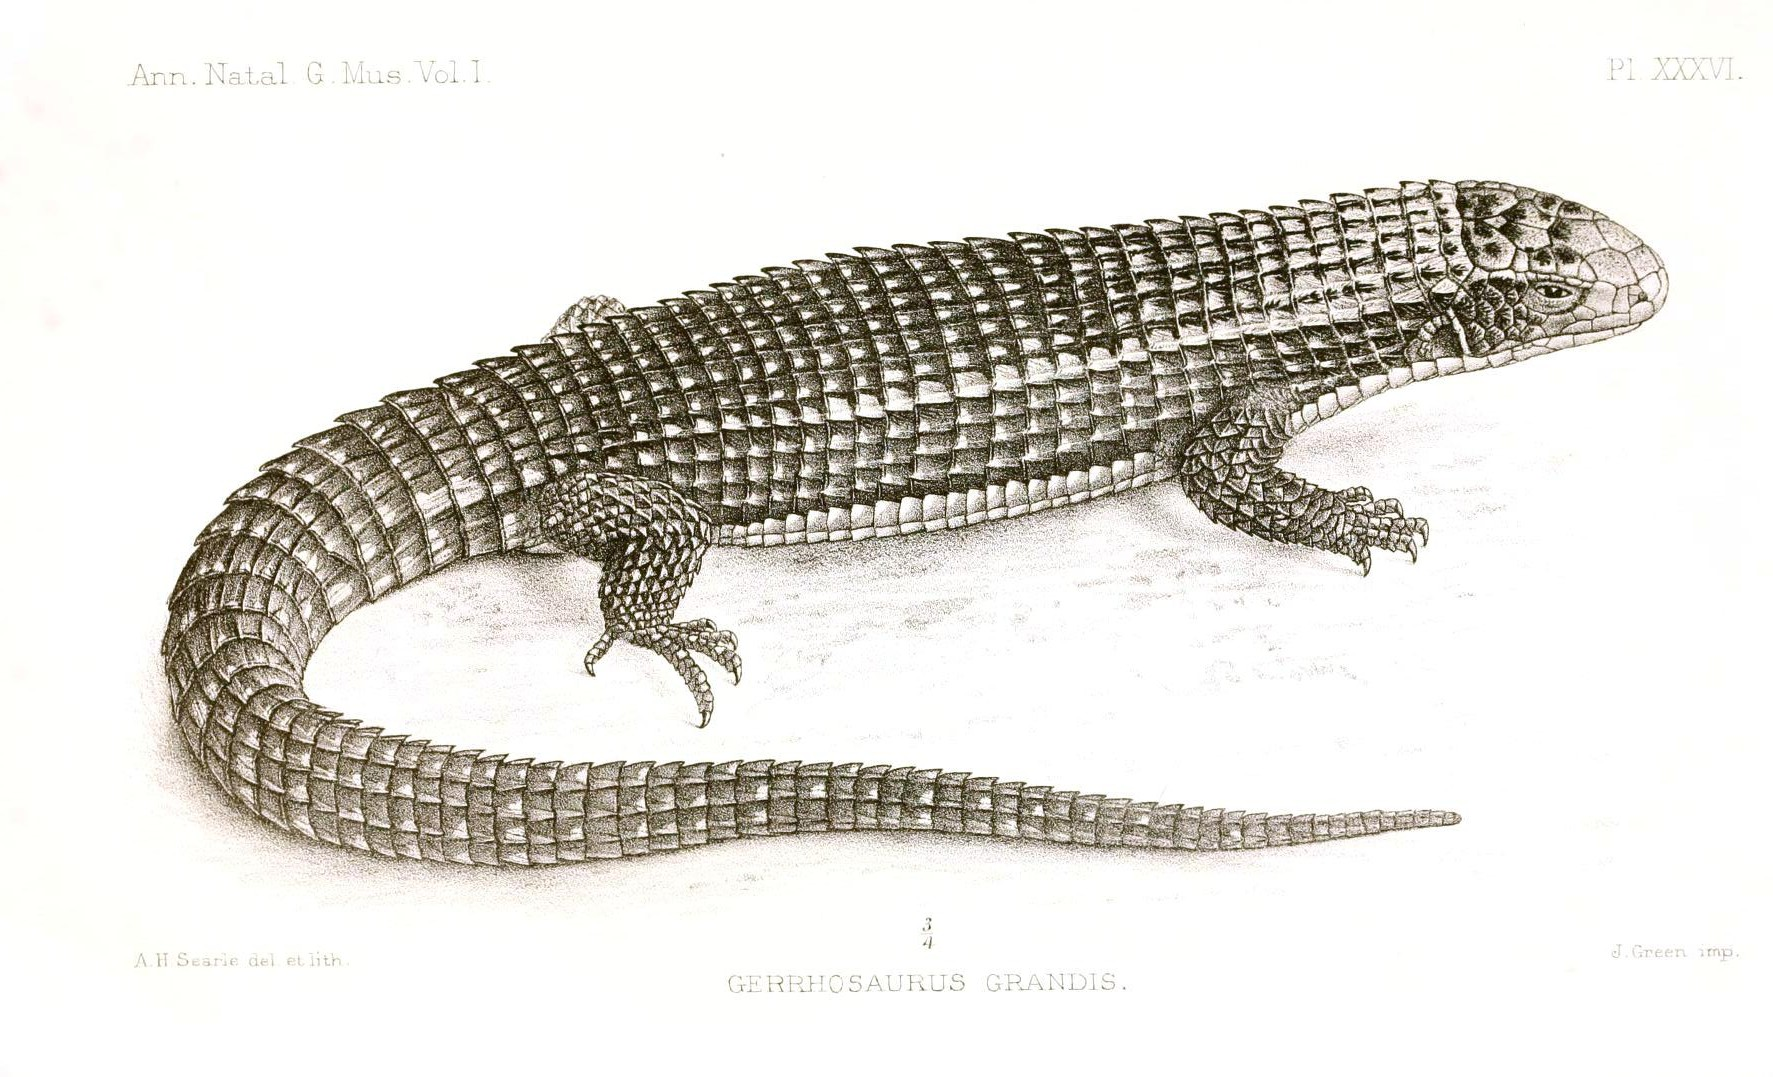 Animal - Reptile - Lizard - African 2